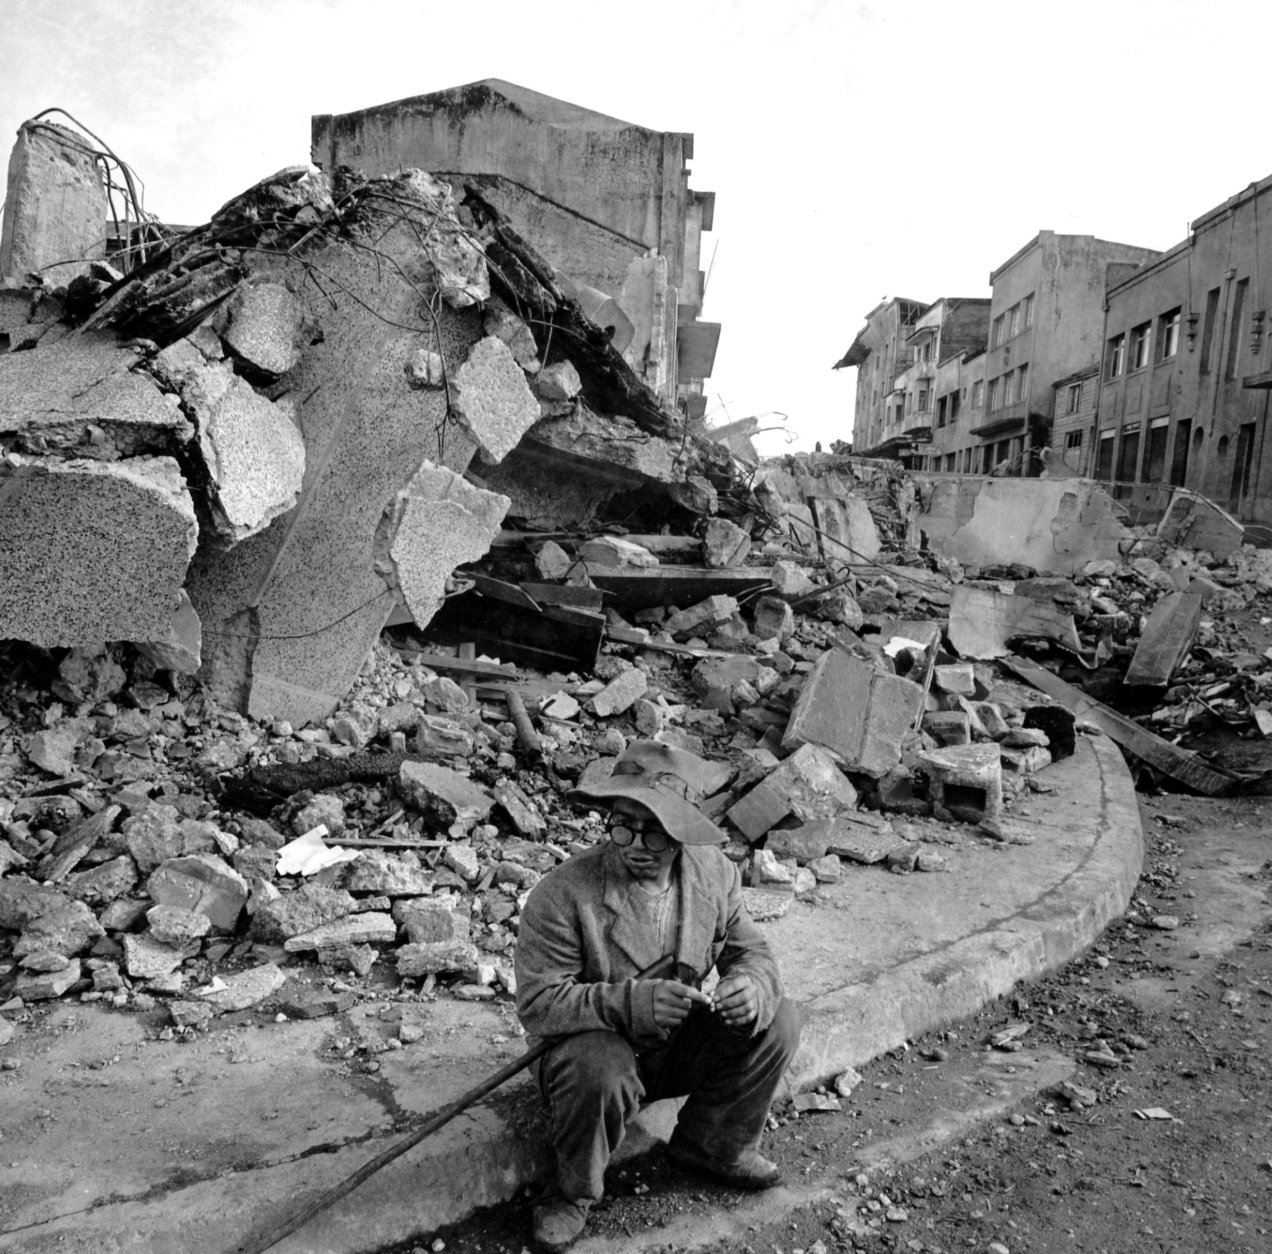 A lone resident of the southern Chile town of Castro sits on a curb in the downtown area after the section was hit by devastating earthquakes.  The rubble in the backround was once  business establishments.  (AP Photo/William J. Smith)